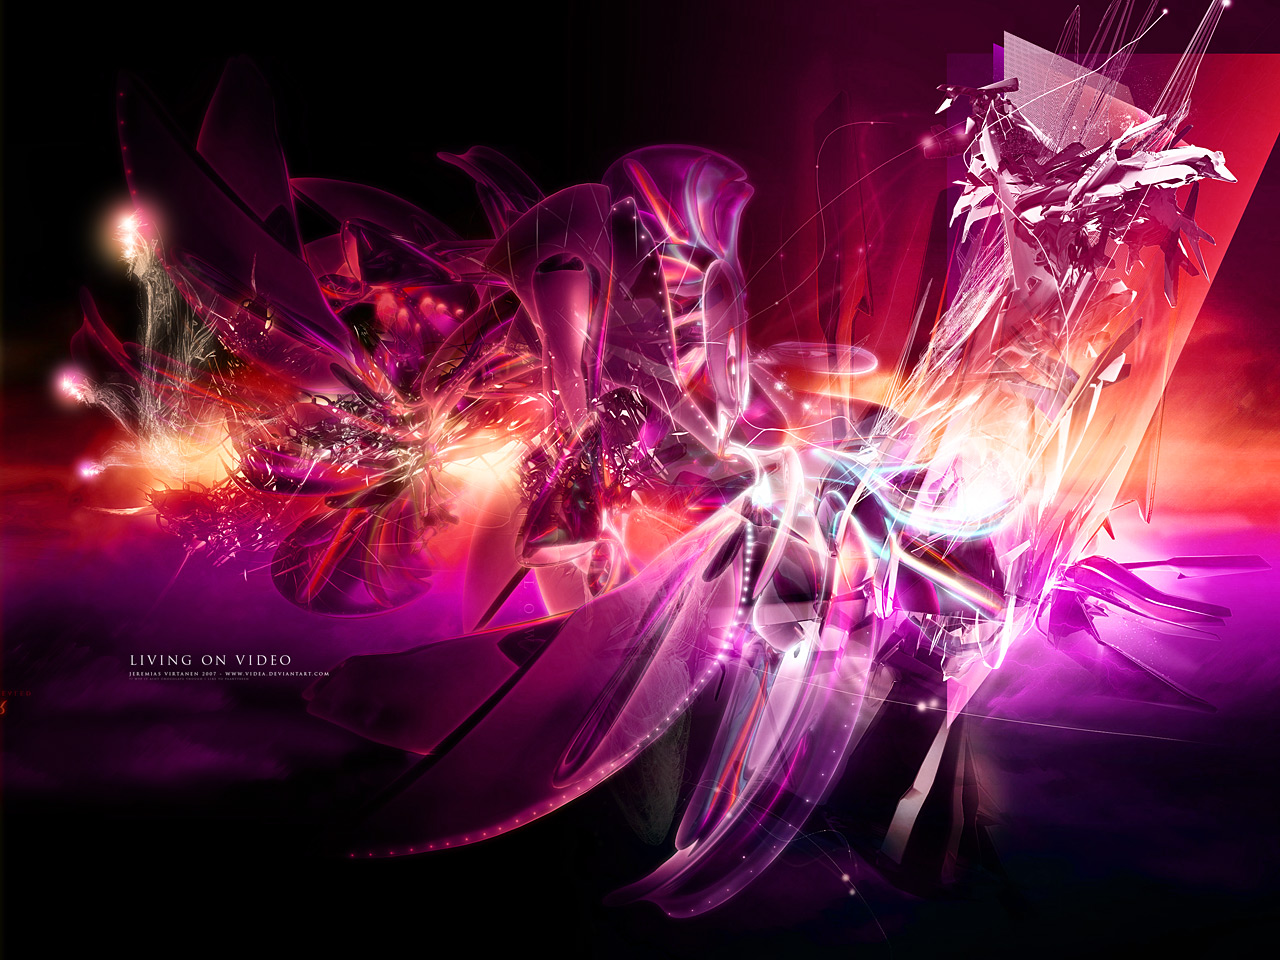 Abstract Art wallpapers 13 1280x960